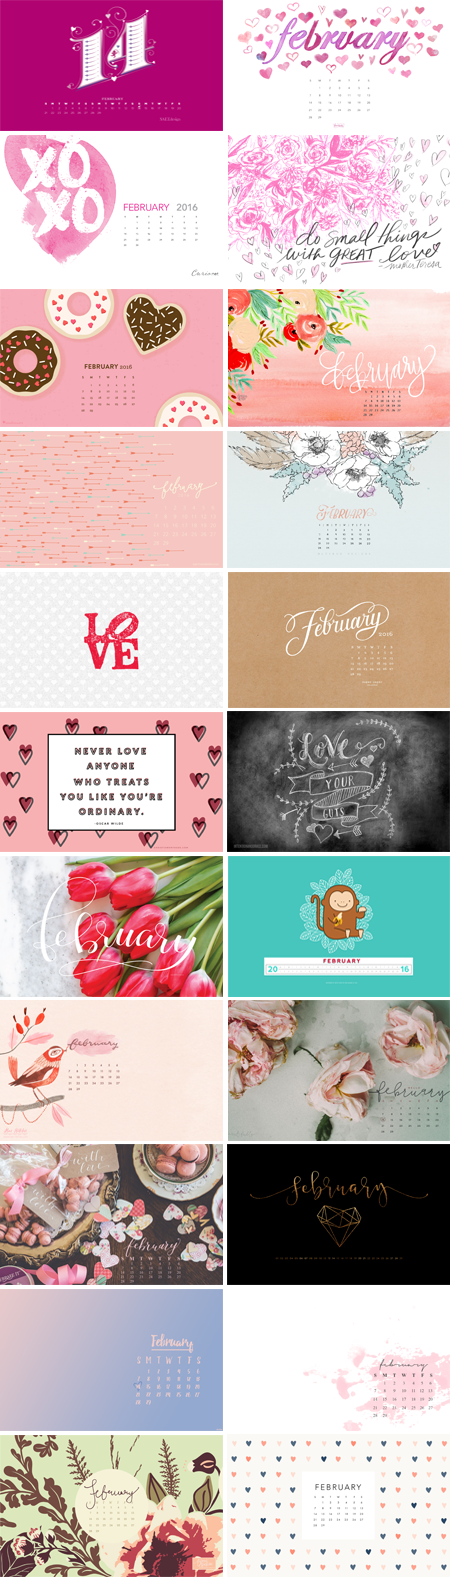 // February 2016 Wallpapers Round-up